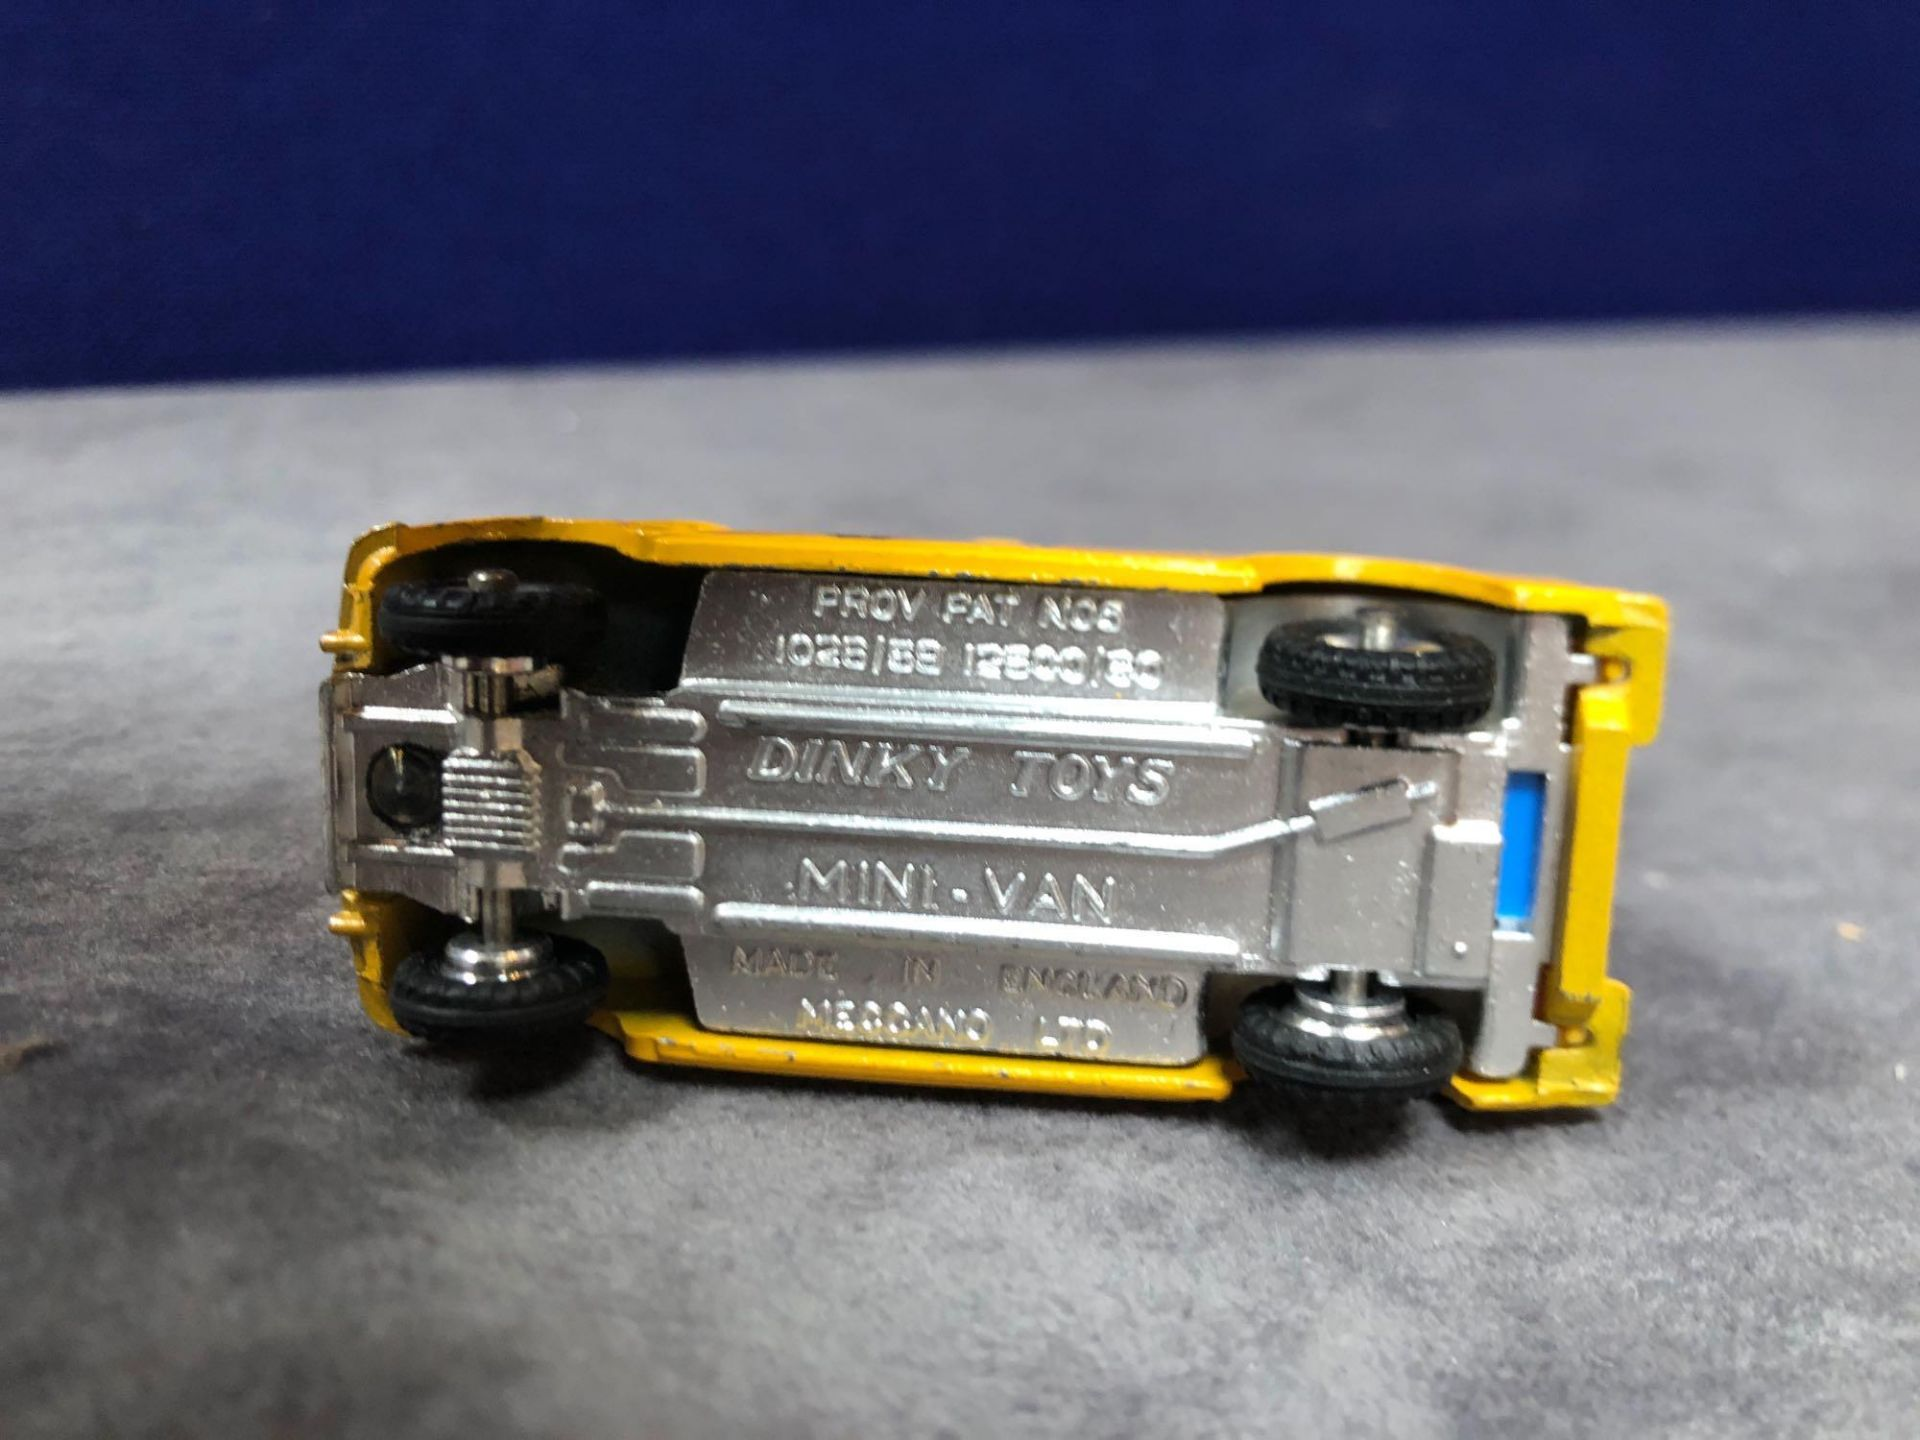 Dinky #274 AA Patrol Mini Van Yellow (AA Service) - Yellow Body And White Roof. AA Service To Van - Image 4 of 4